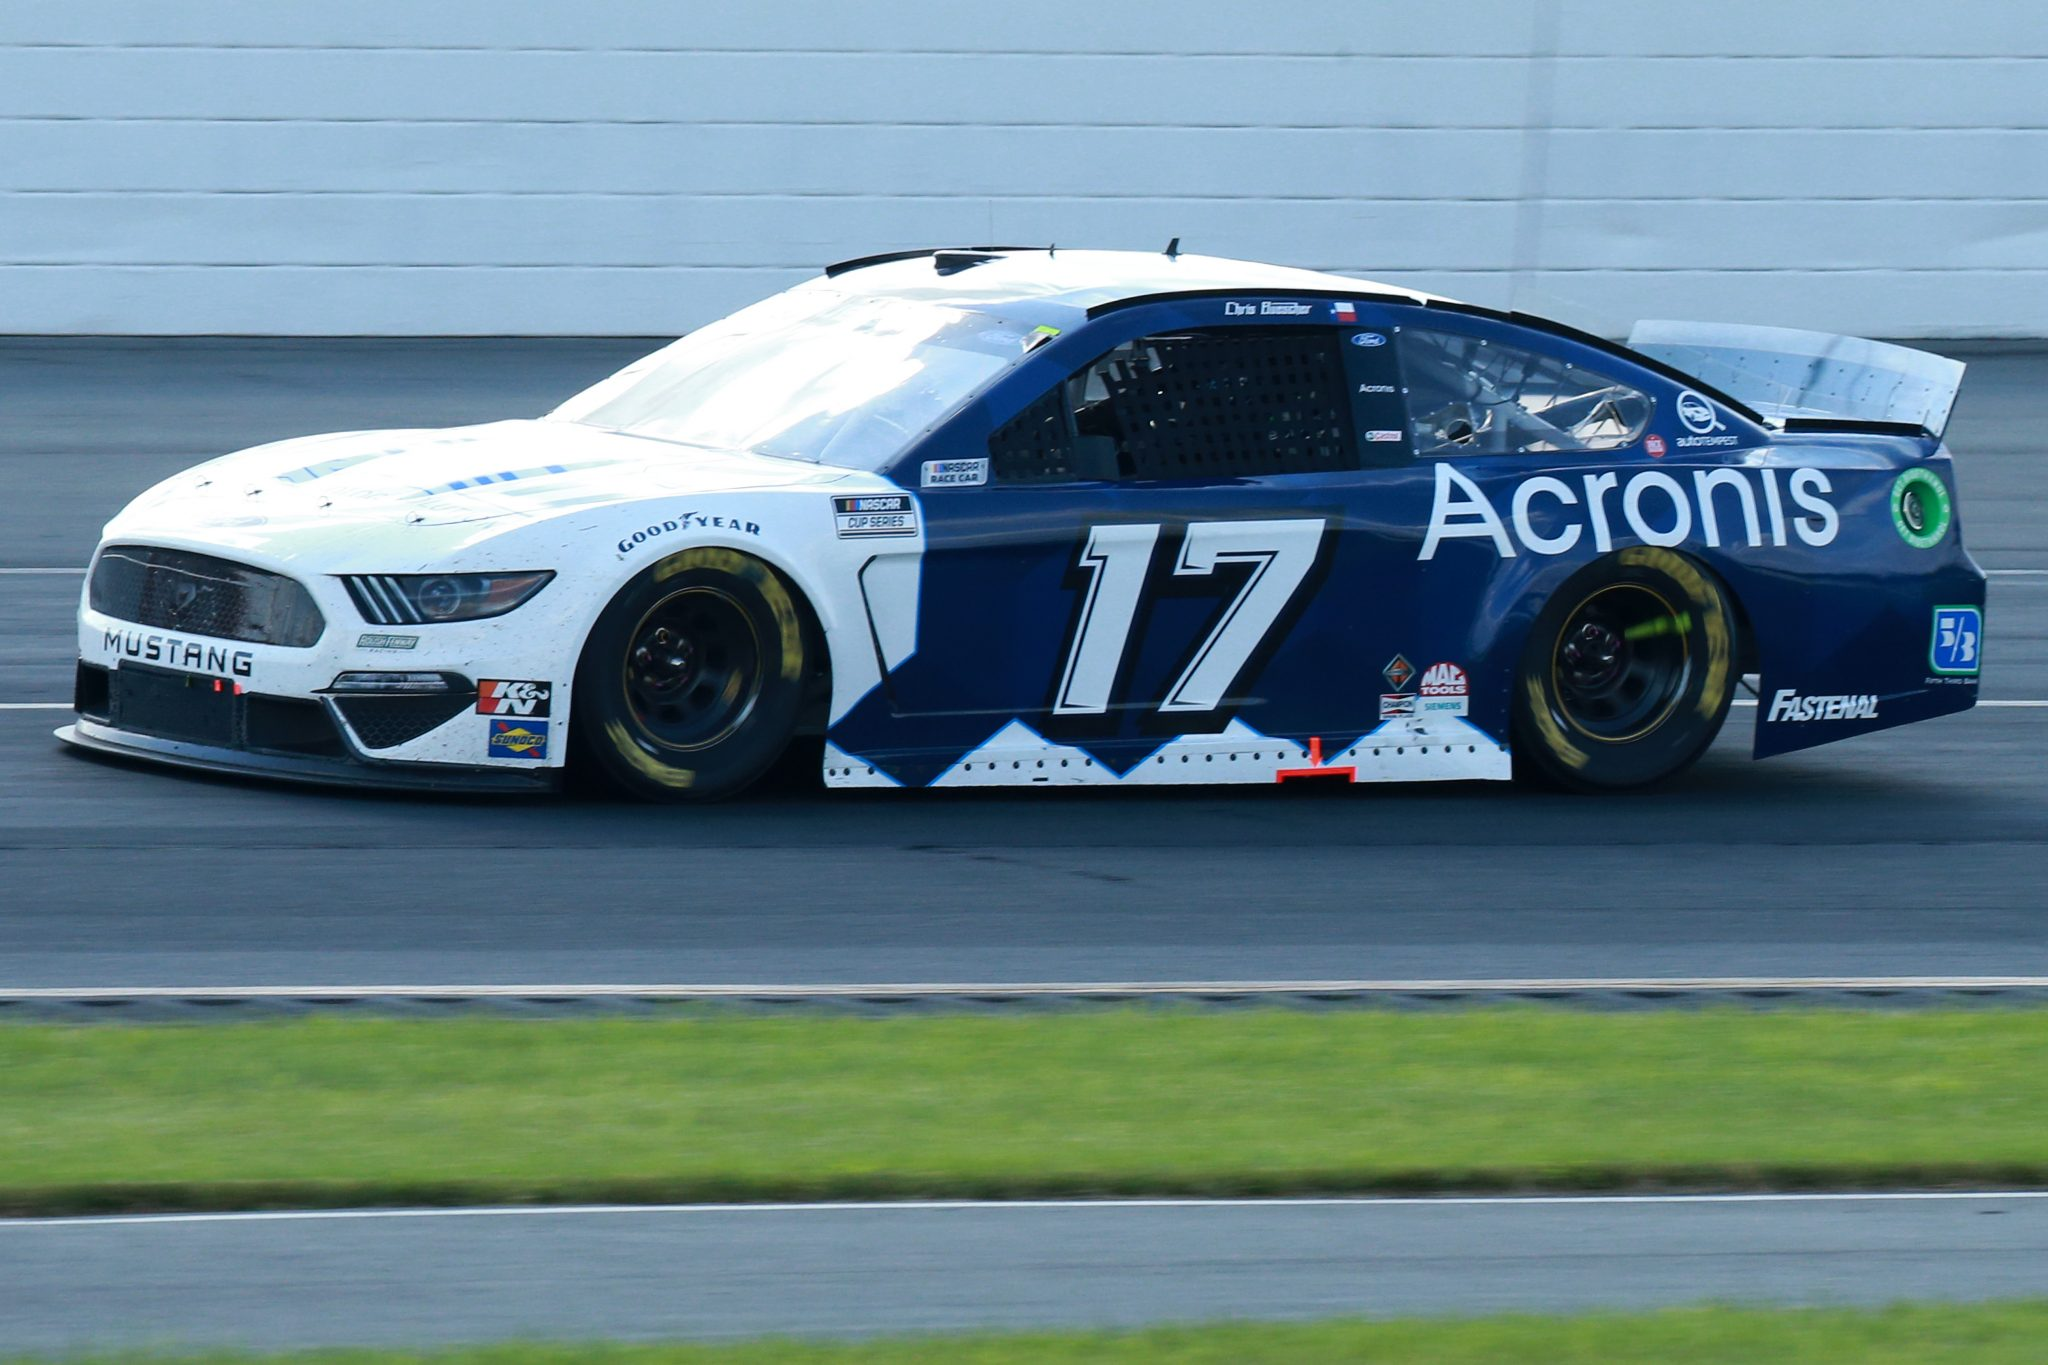 LONG POND, PENNSYLVANIA - JUNE 27: Chris Buescher, driver of the #17 Acronis Ford, drives during the NASCAR Cup Series Explore the Pocono Mountains 350 at Pocono Raceway on June 27, 2021 in Long Pond, Pennsylvania. (Photo by Sean Gardner/Getty Images) | Getty Images